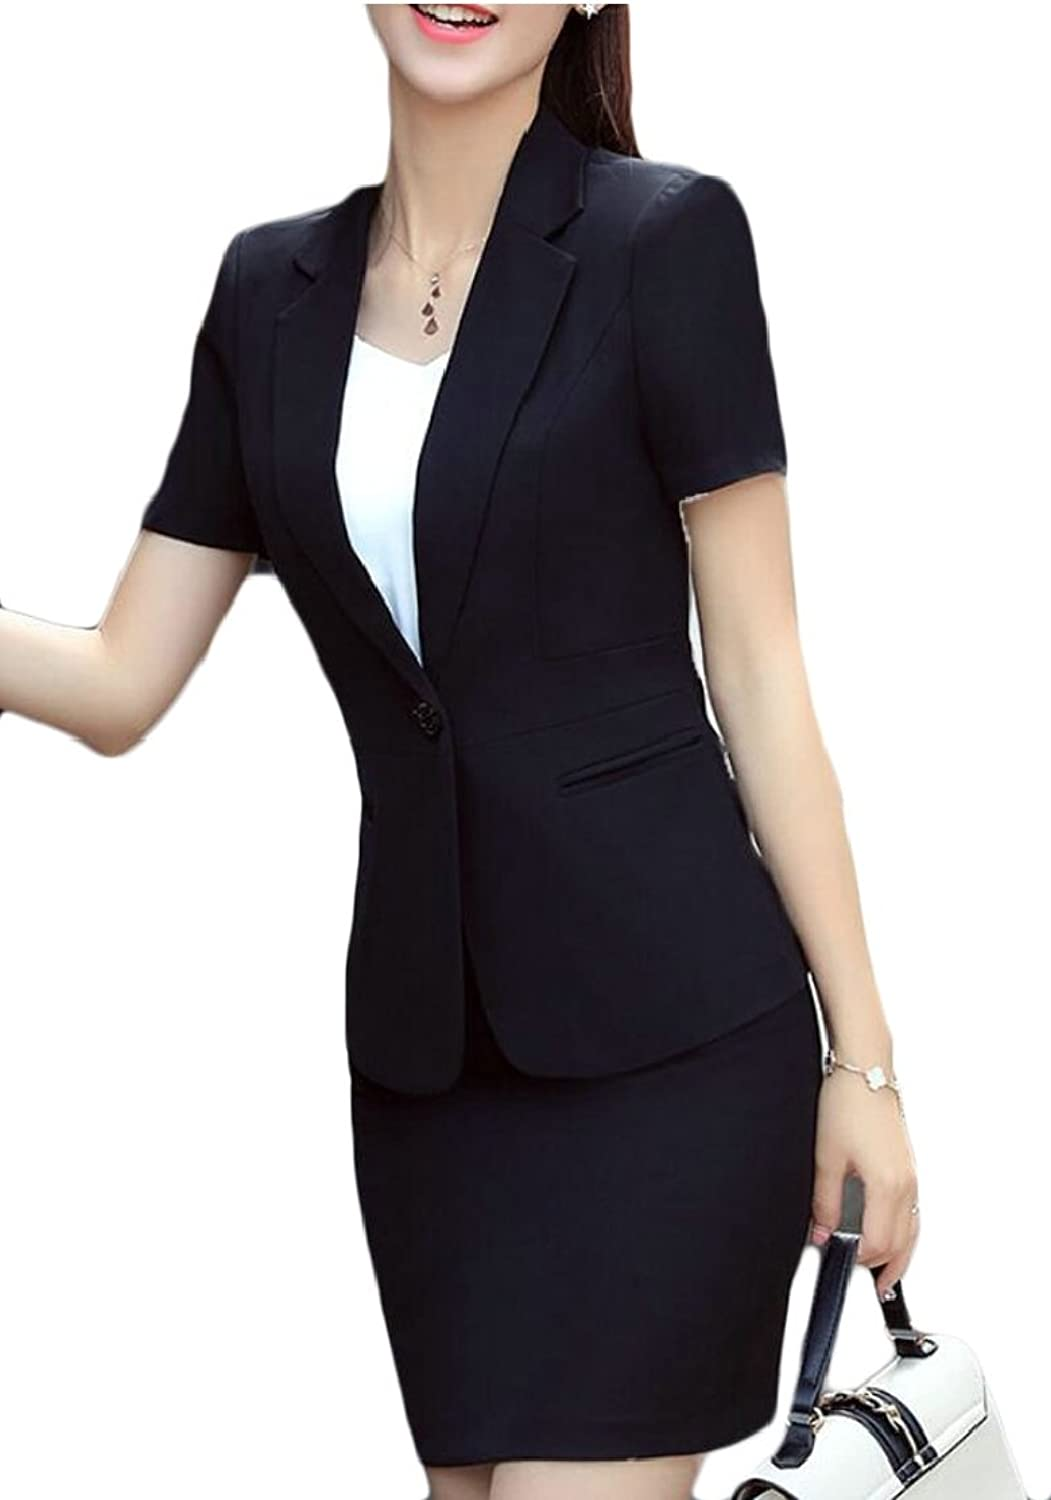 Jxfd Womens Wear to Work Solid Skirt Suit Set